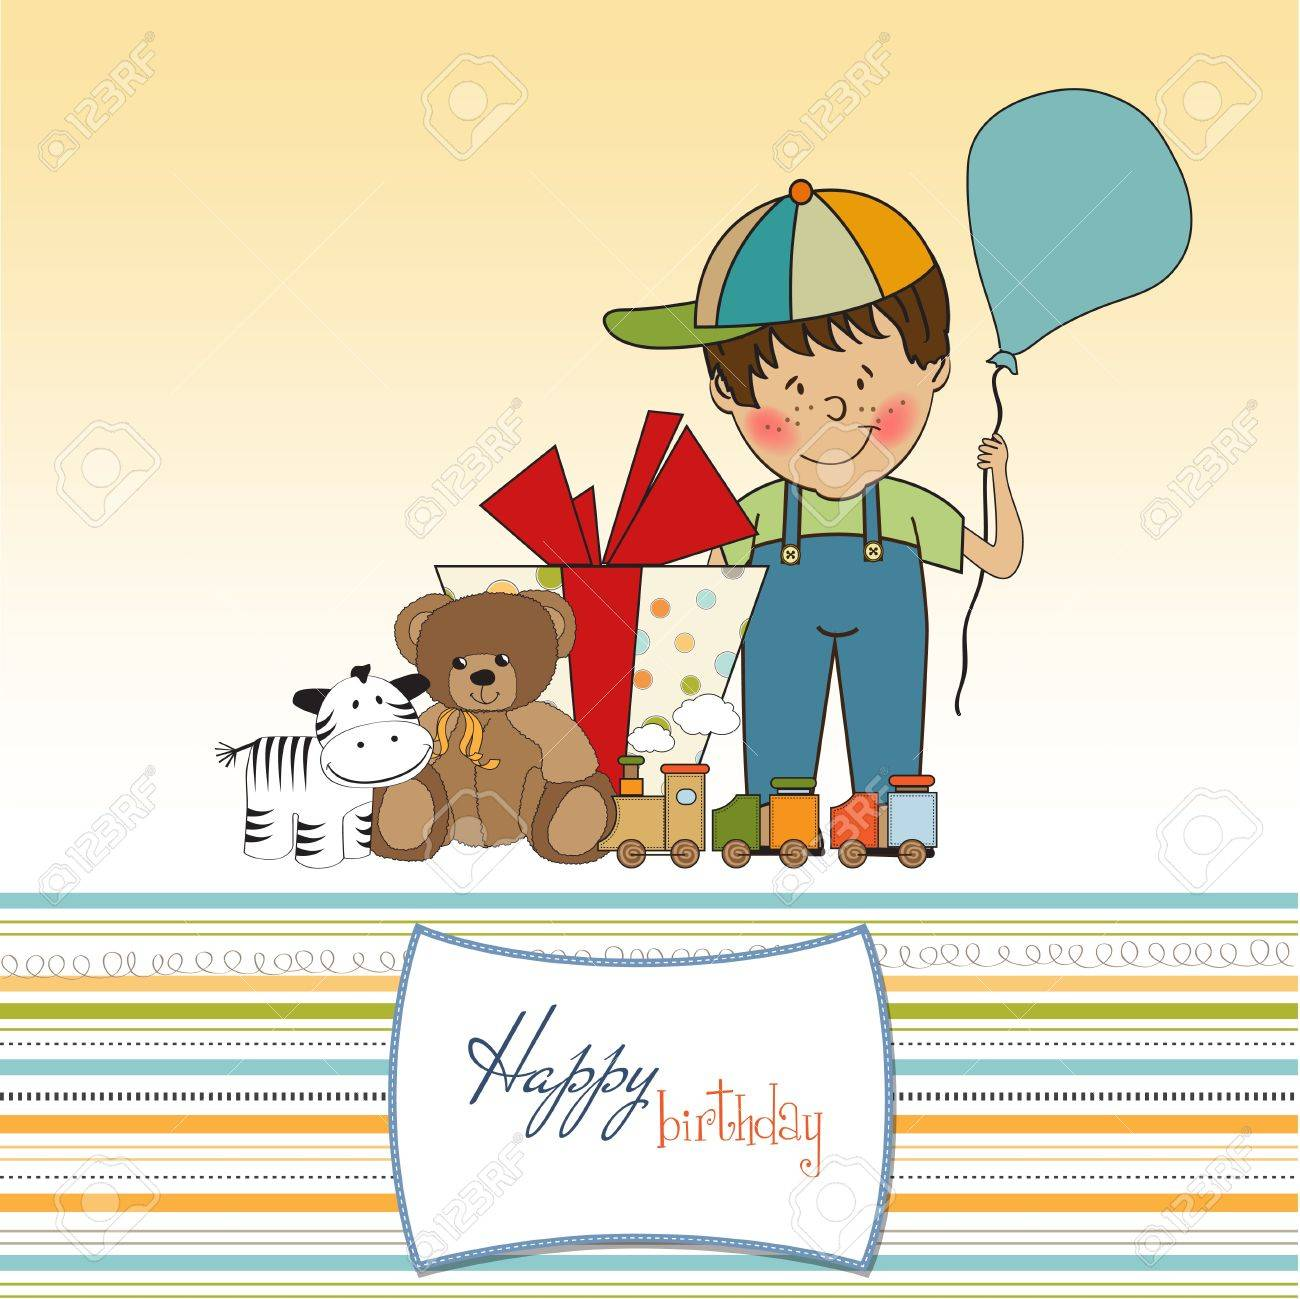 Birthday Greeting Card With Little Boy And Presents Royalty Free